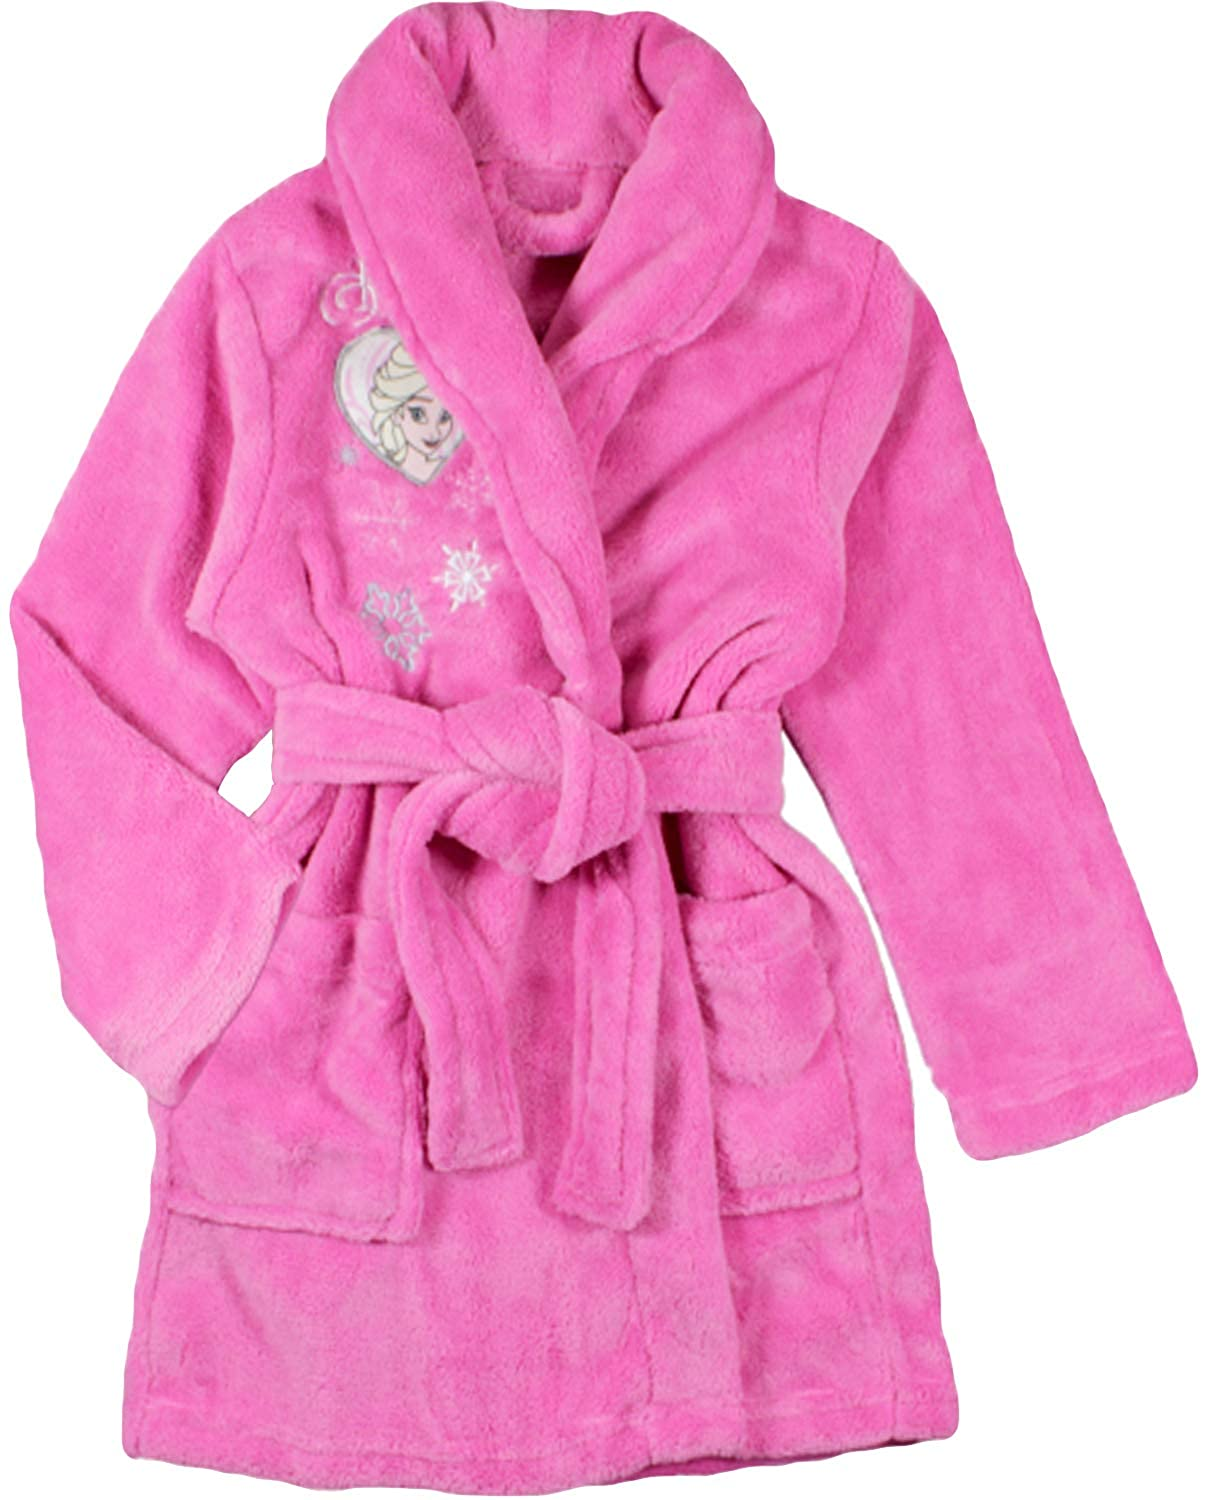 Disney Frozen Girls Fleece Robe